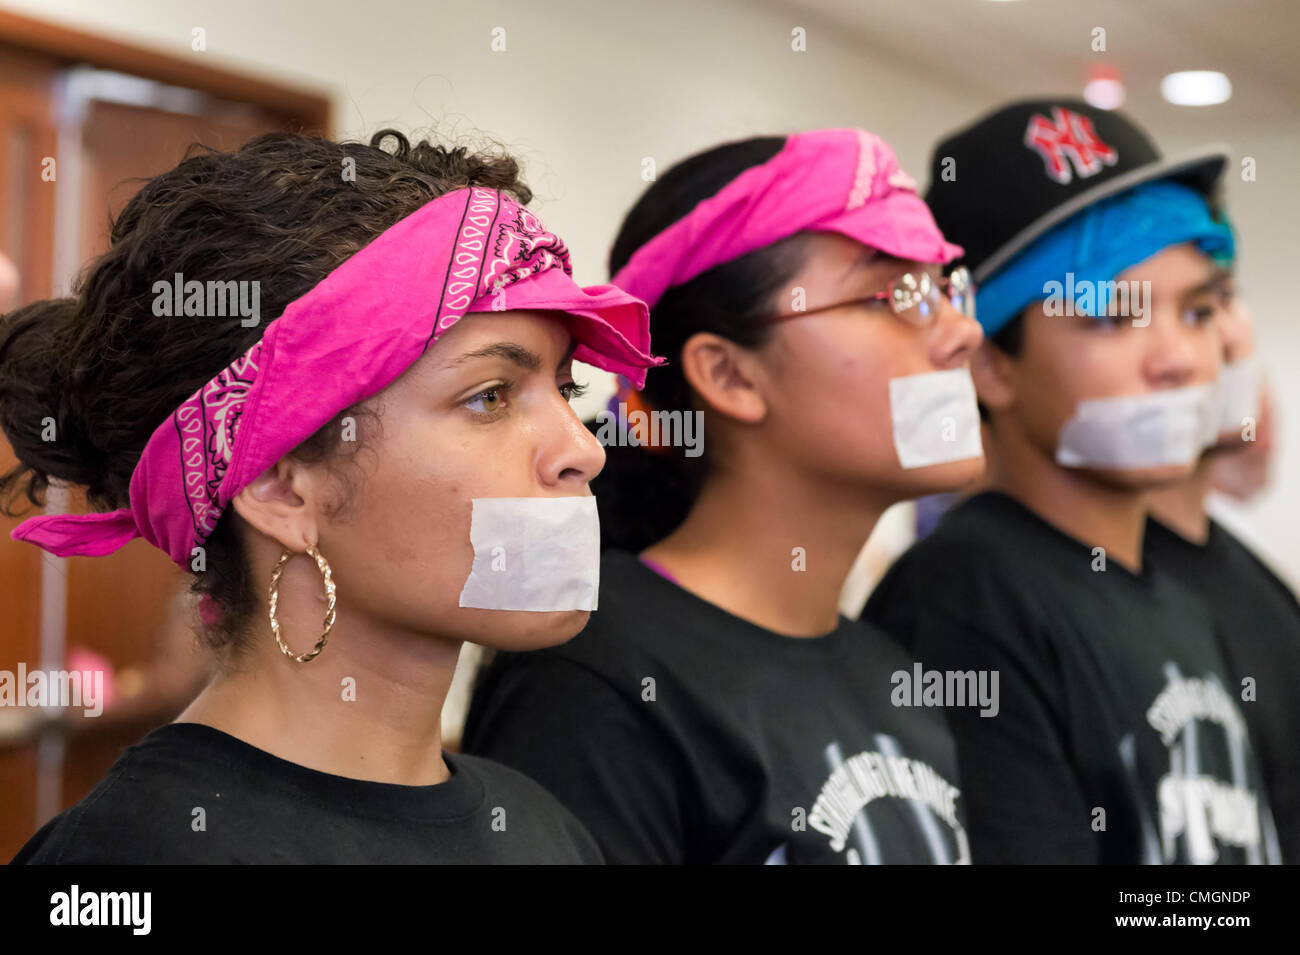 AUGUST 6, 2012 - Mineola, New York, U.S. - At Nassau County Legislature meeting, protesters from Strong Youth Inc - Stock Image